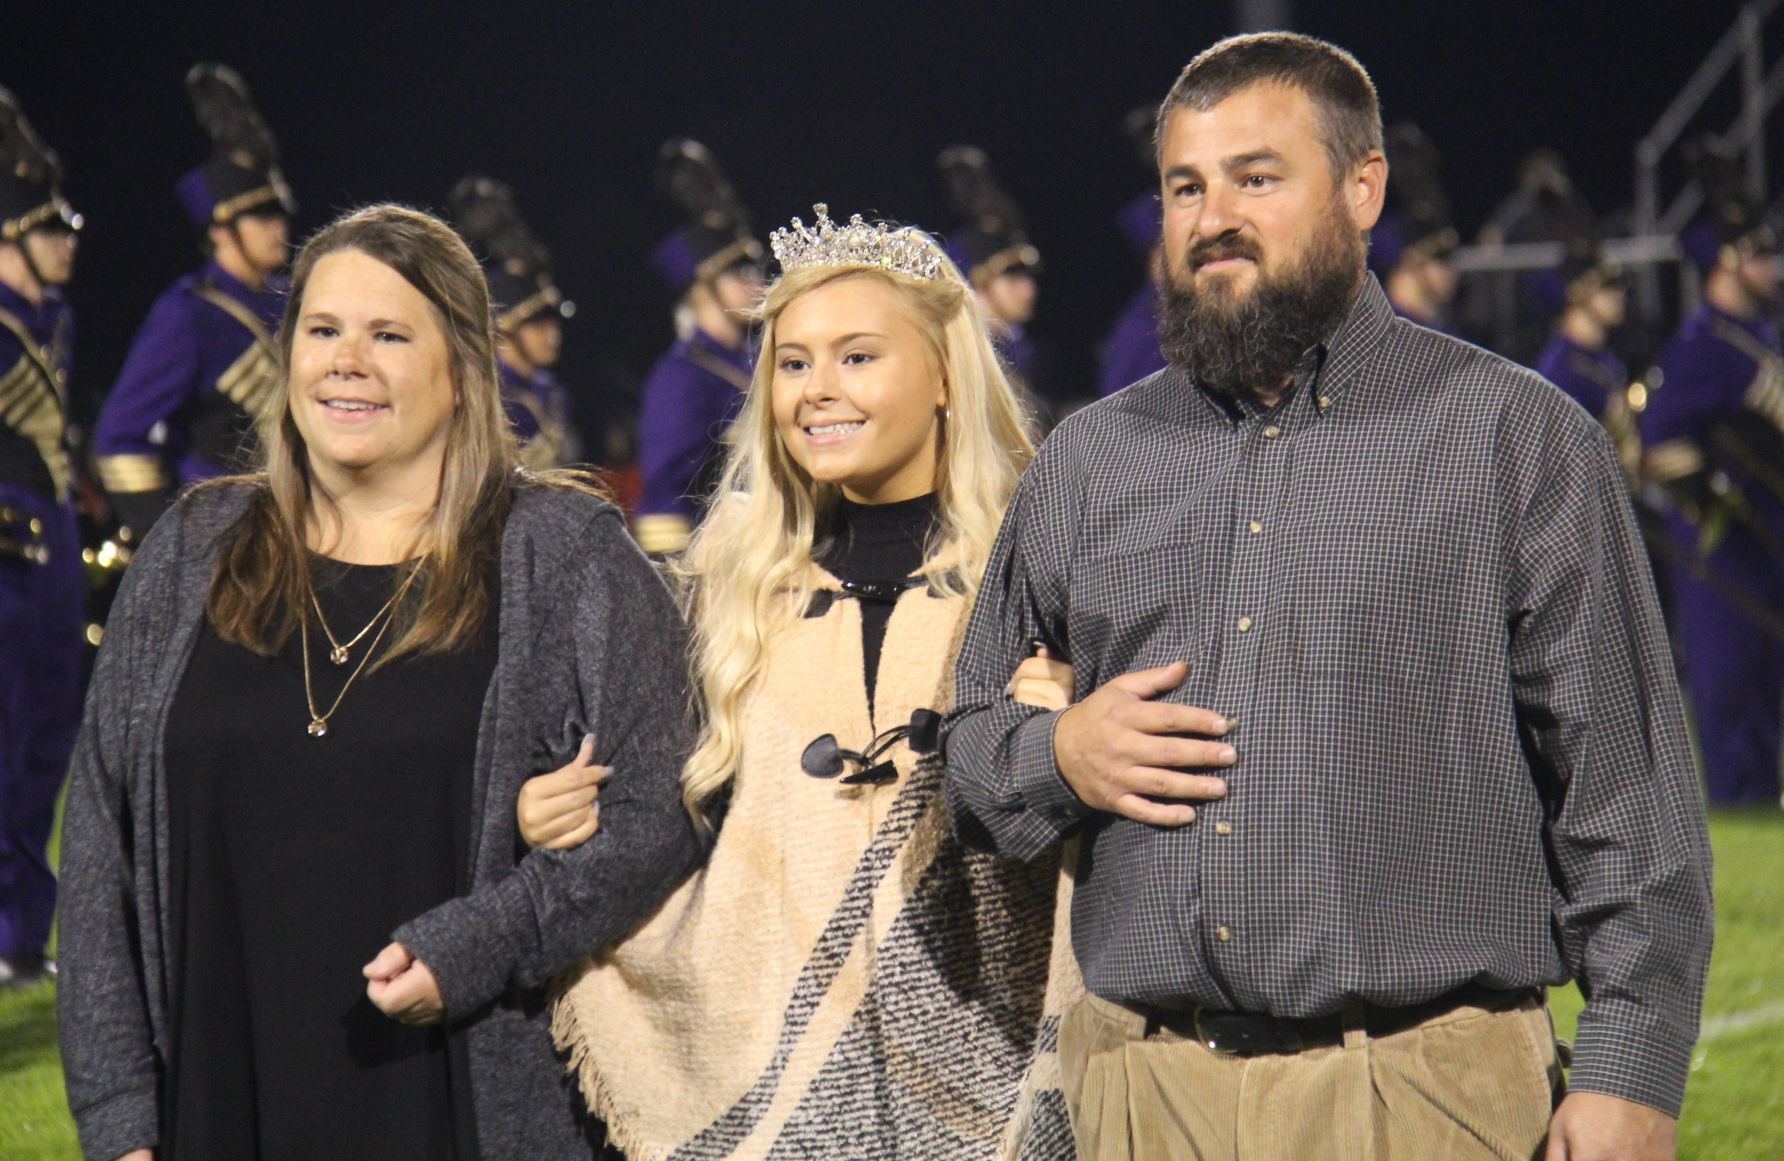 GALLERY: Lexington Homecoming Court